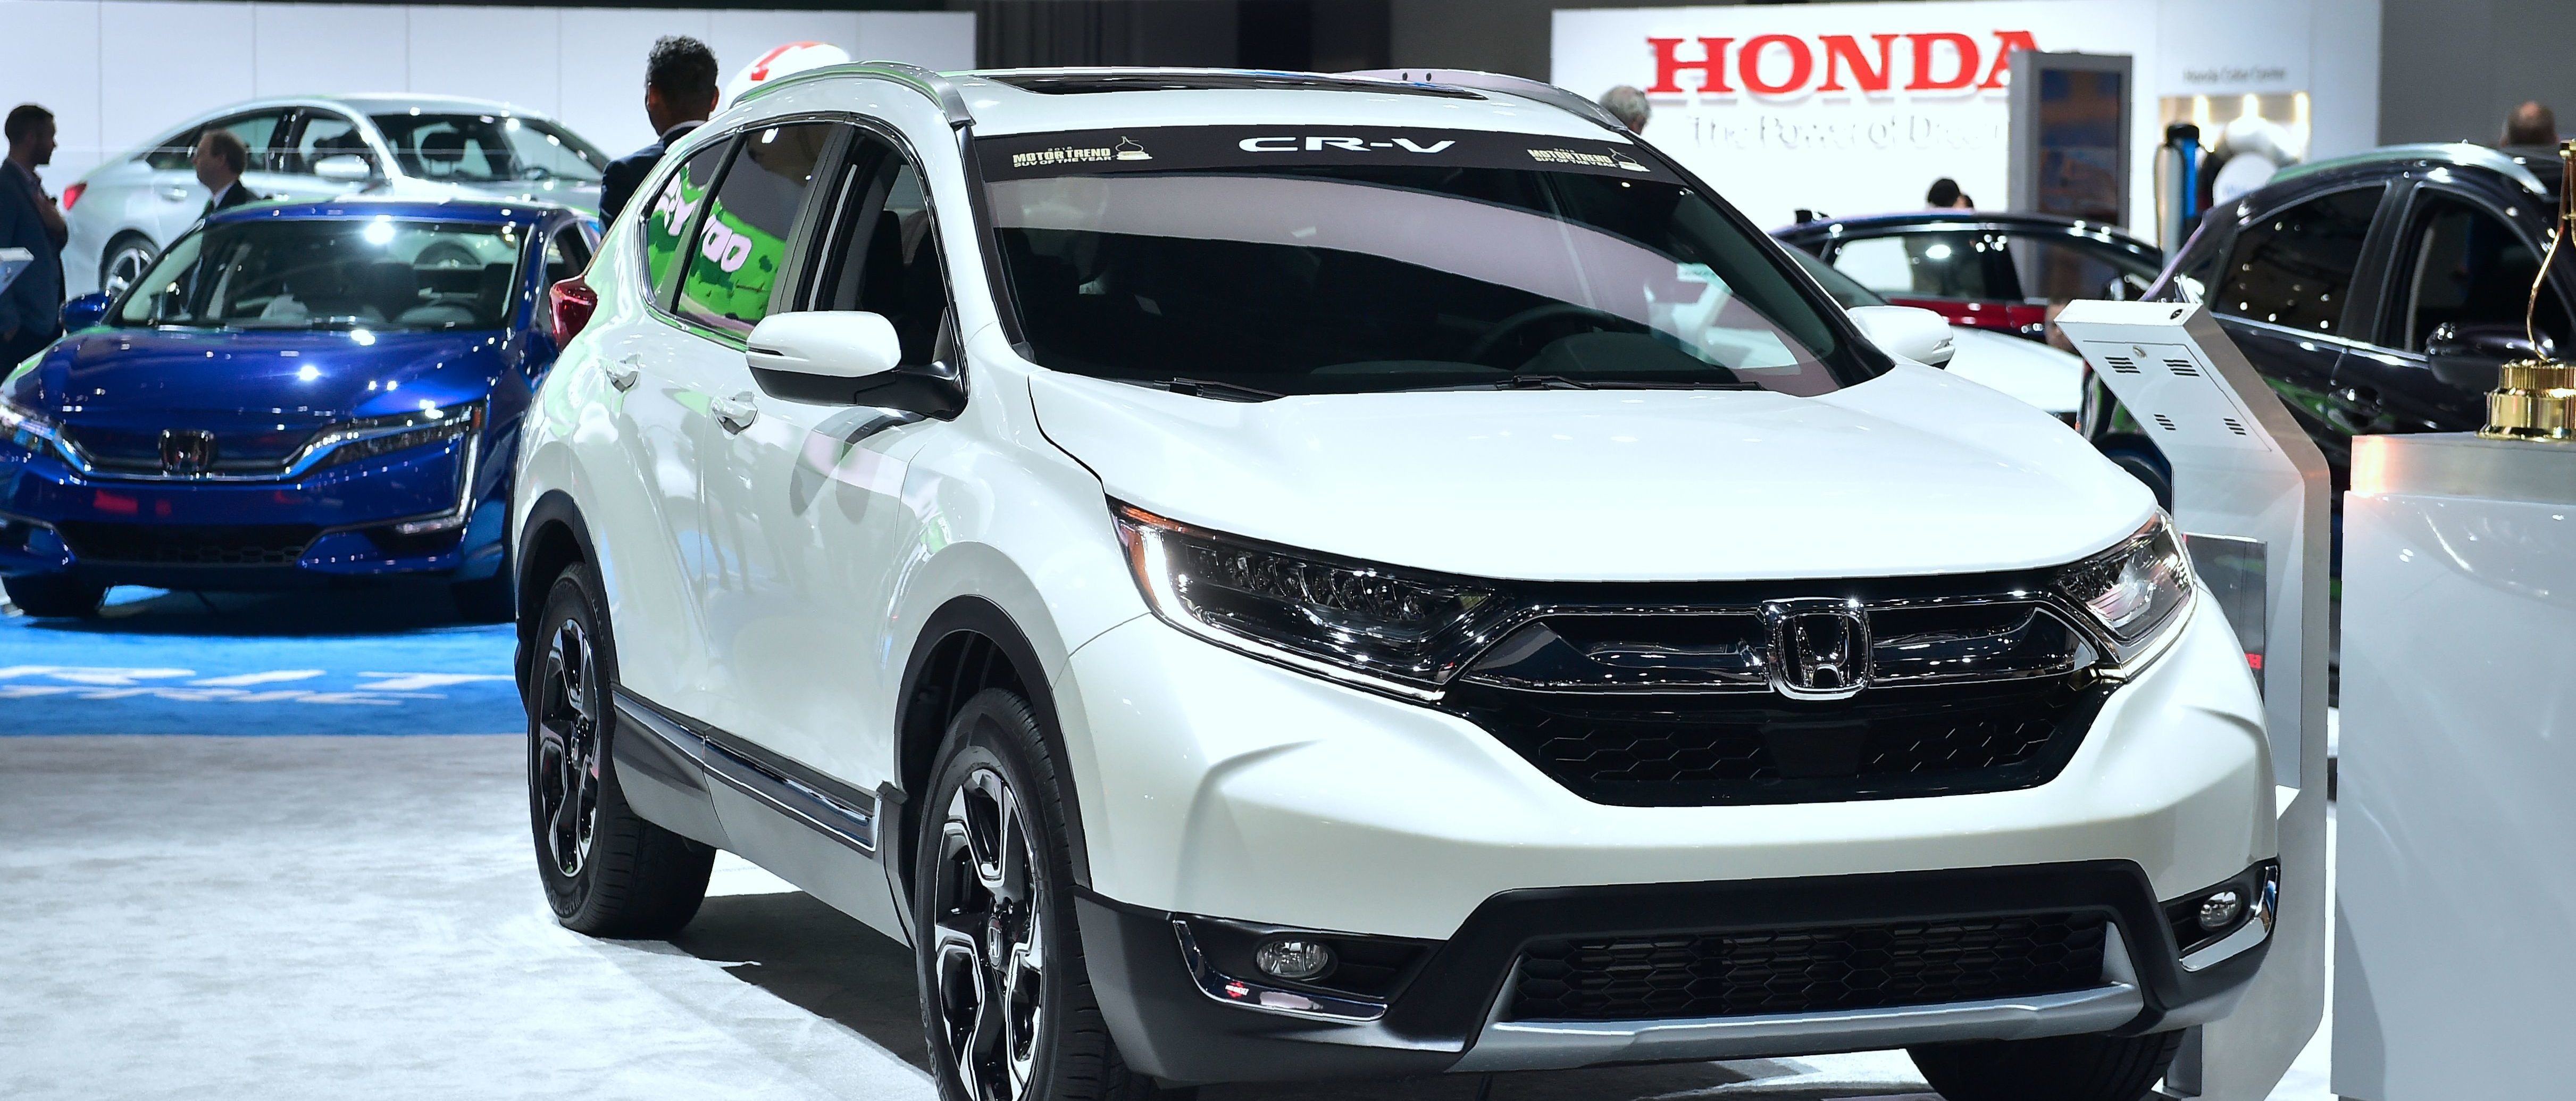 The 2018 Honda CR-V, Motor Trend Magazine's 2018 SUV of the Year is displayed at the 2017 LA Auto Show in Los Angeles, California on November 30, 2017, which opens to the public from December 1-10, 2017. (Photo by FREDERIC J. BROWN/AFP/Getty Images)